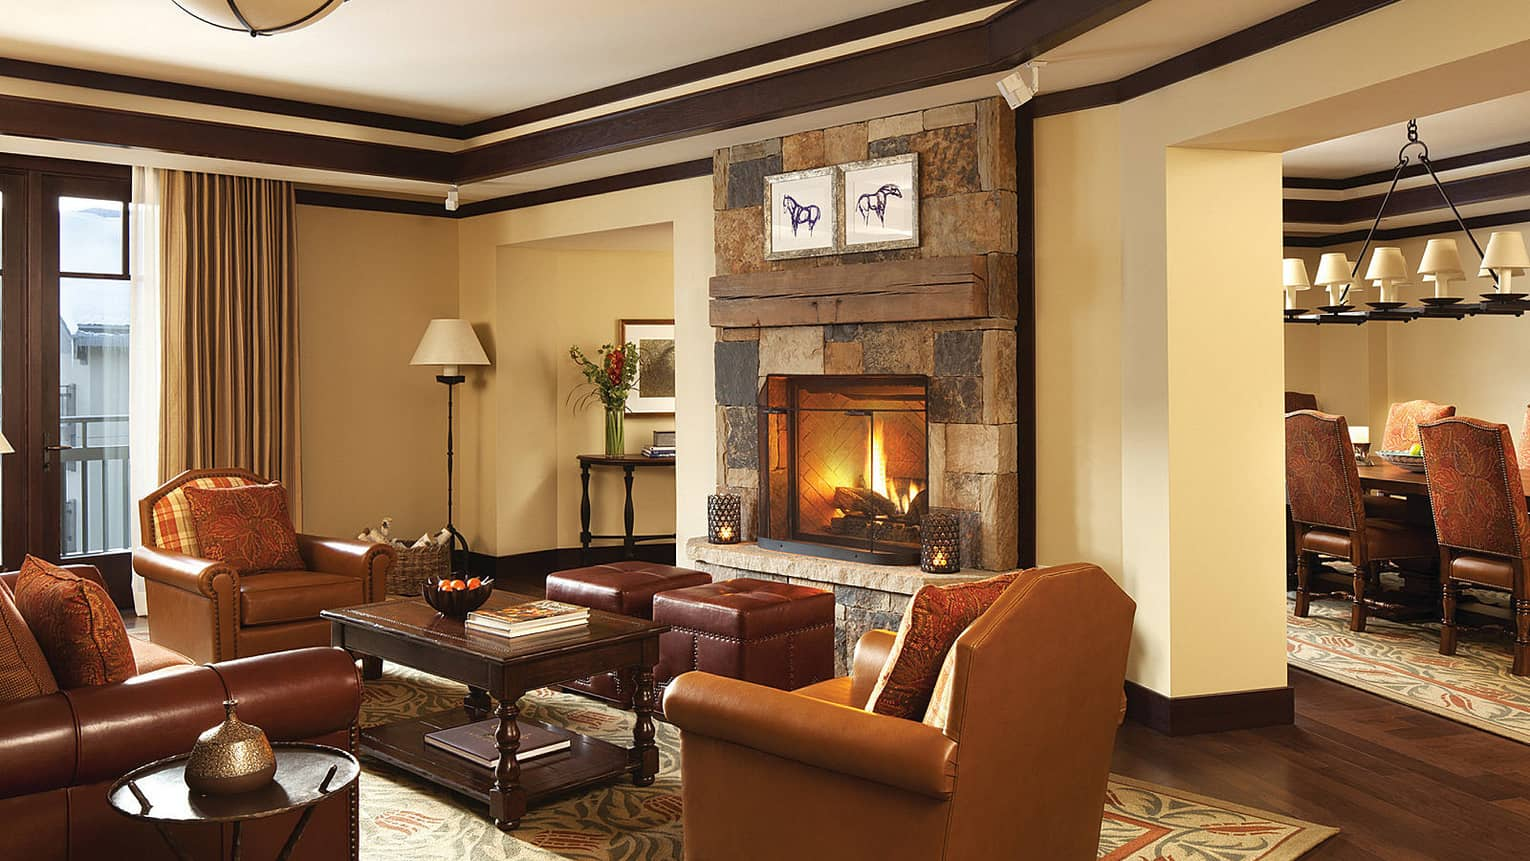 Brown leather sofa and armchairs in front of brick fireplace and fire, ranch-style dining table in view